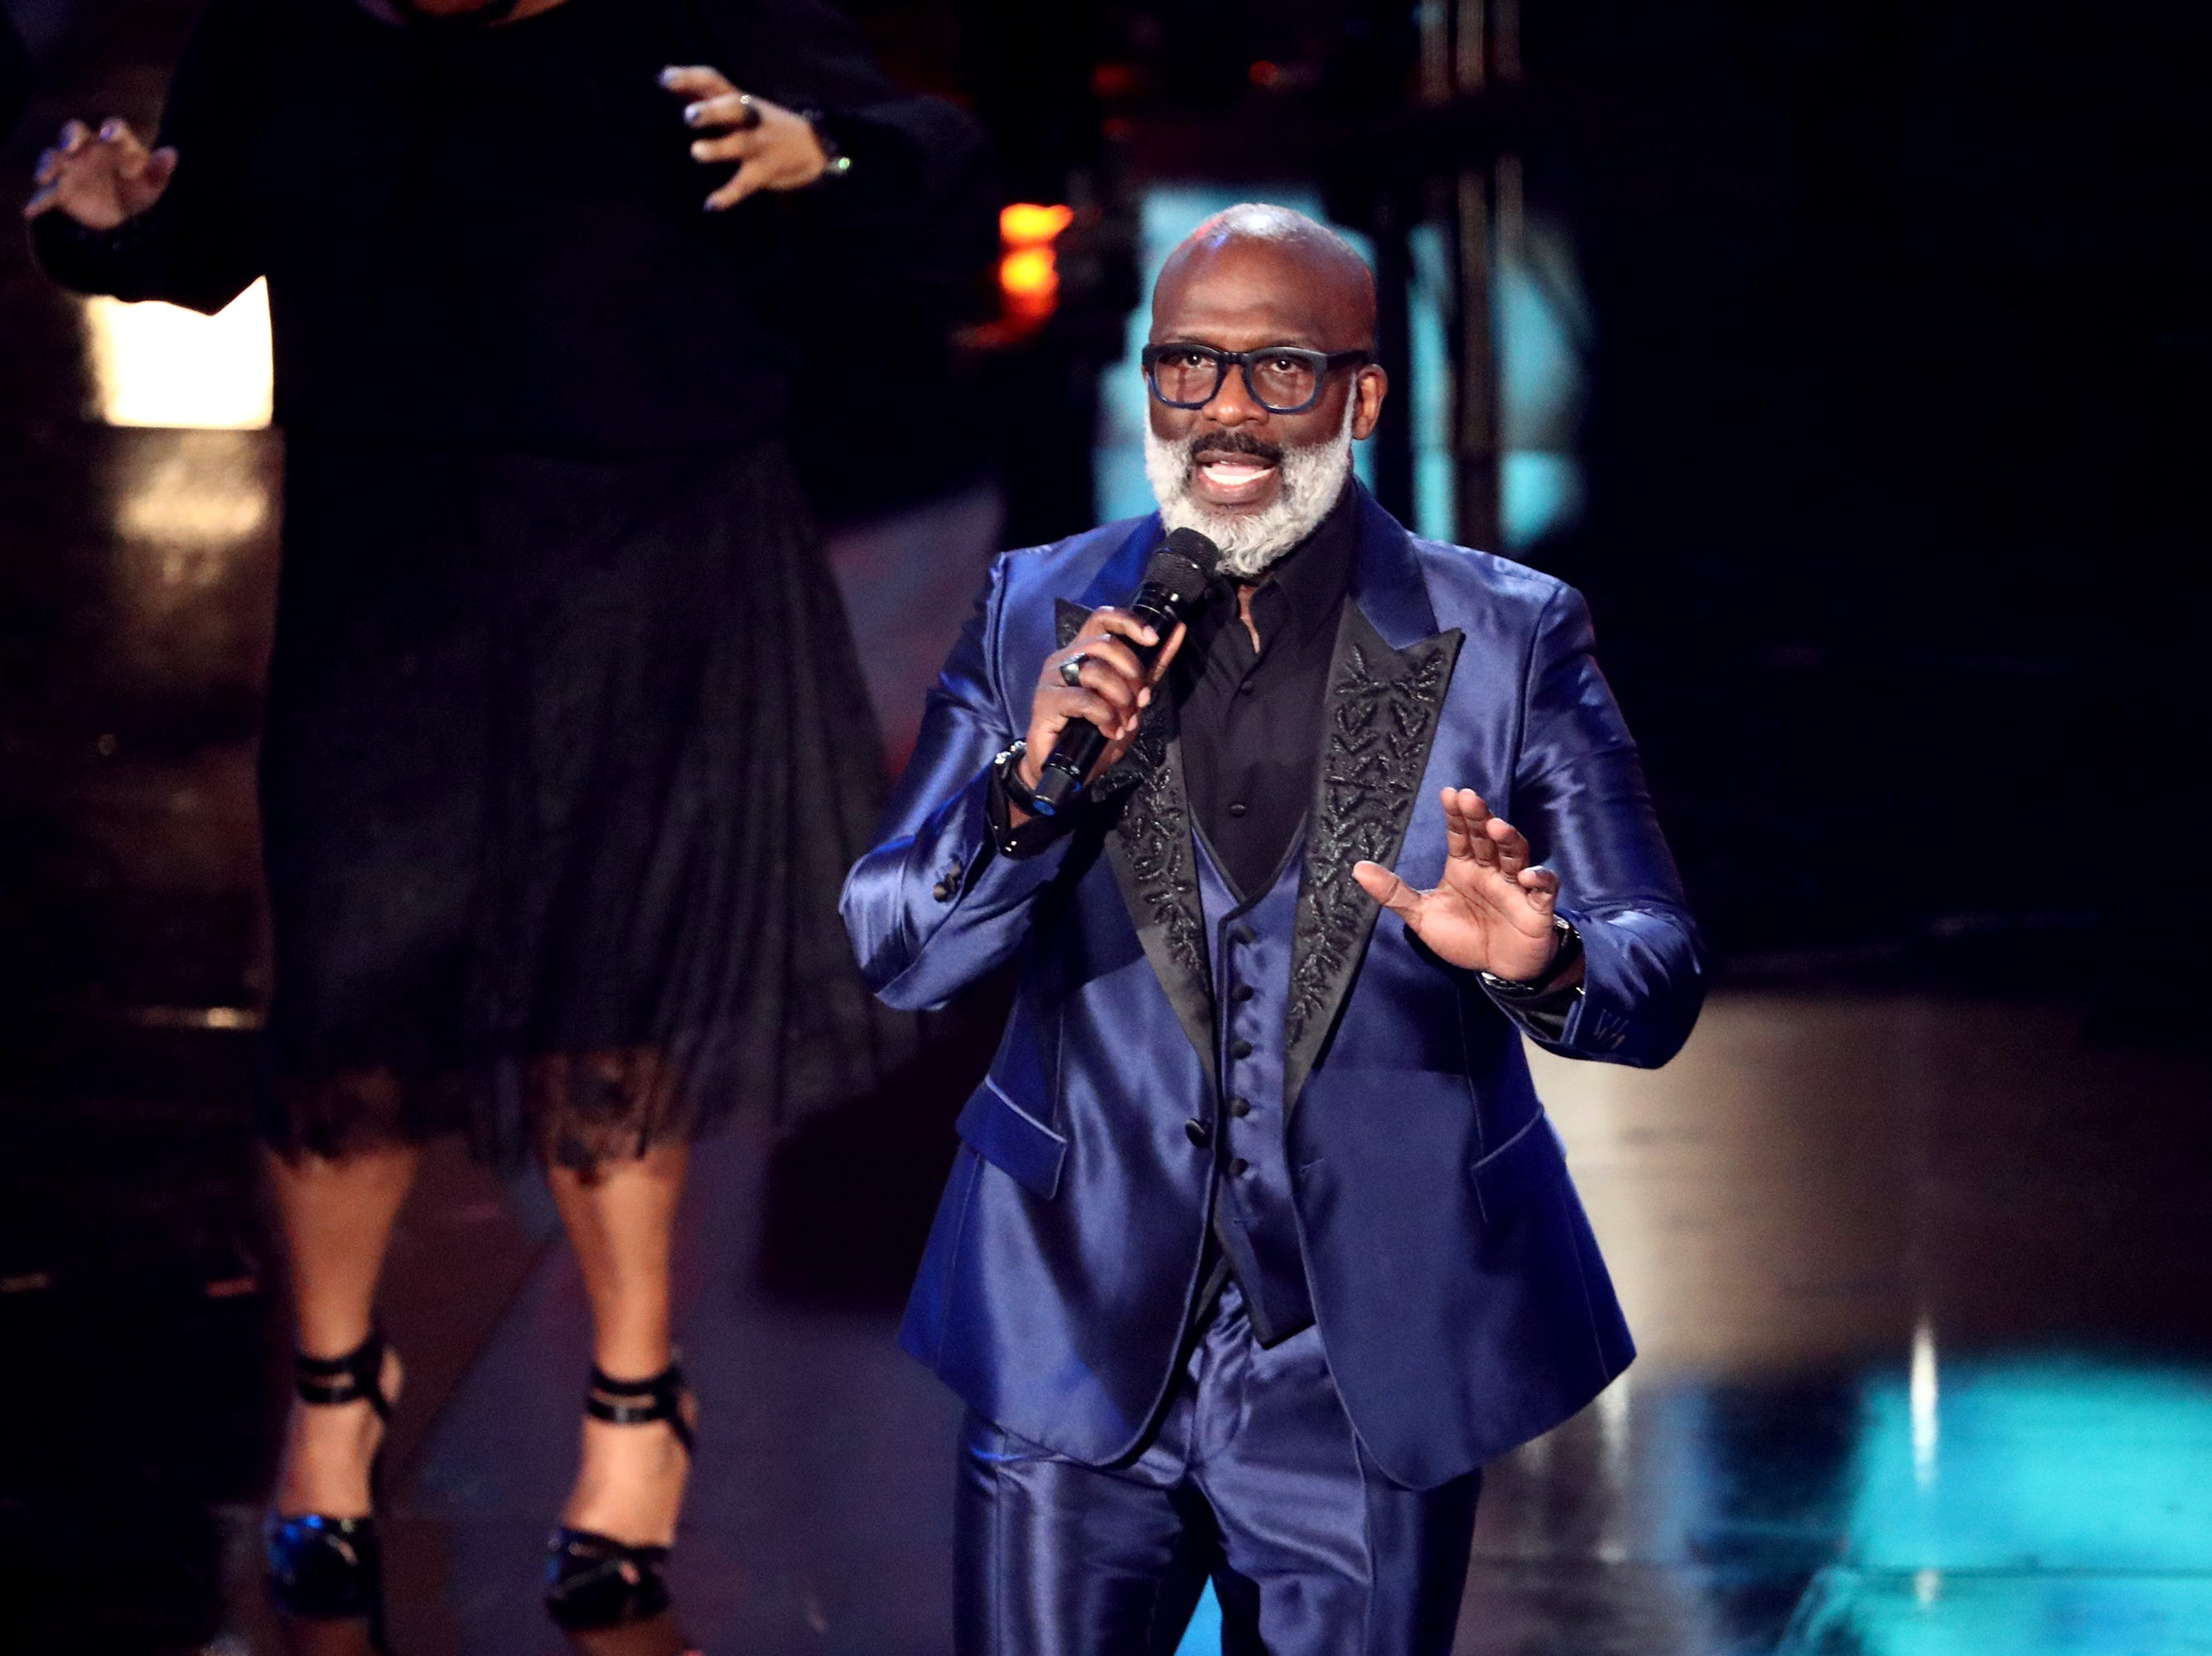 """LOS ANGELES, CA - JANUARY 13:  Bebe Winans performs at """"Aretha! A Grammy Celebration For the Queen Of Soul"""" at the Shrine Auditorium on Jan. 13, 2019, in Los Angeles, Calif."""